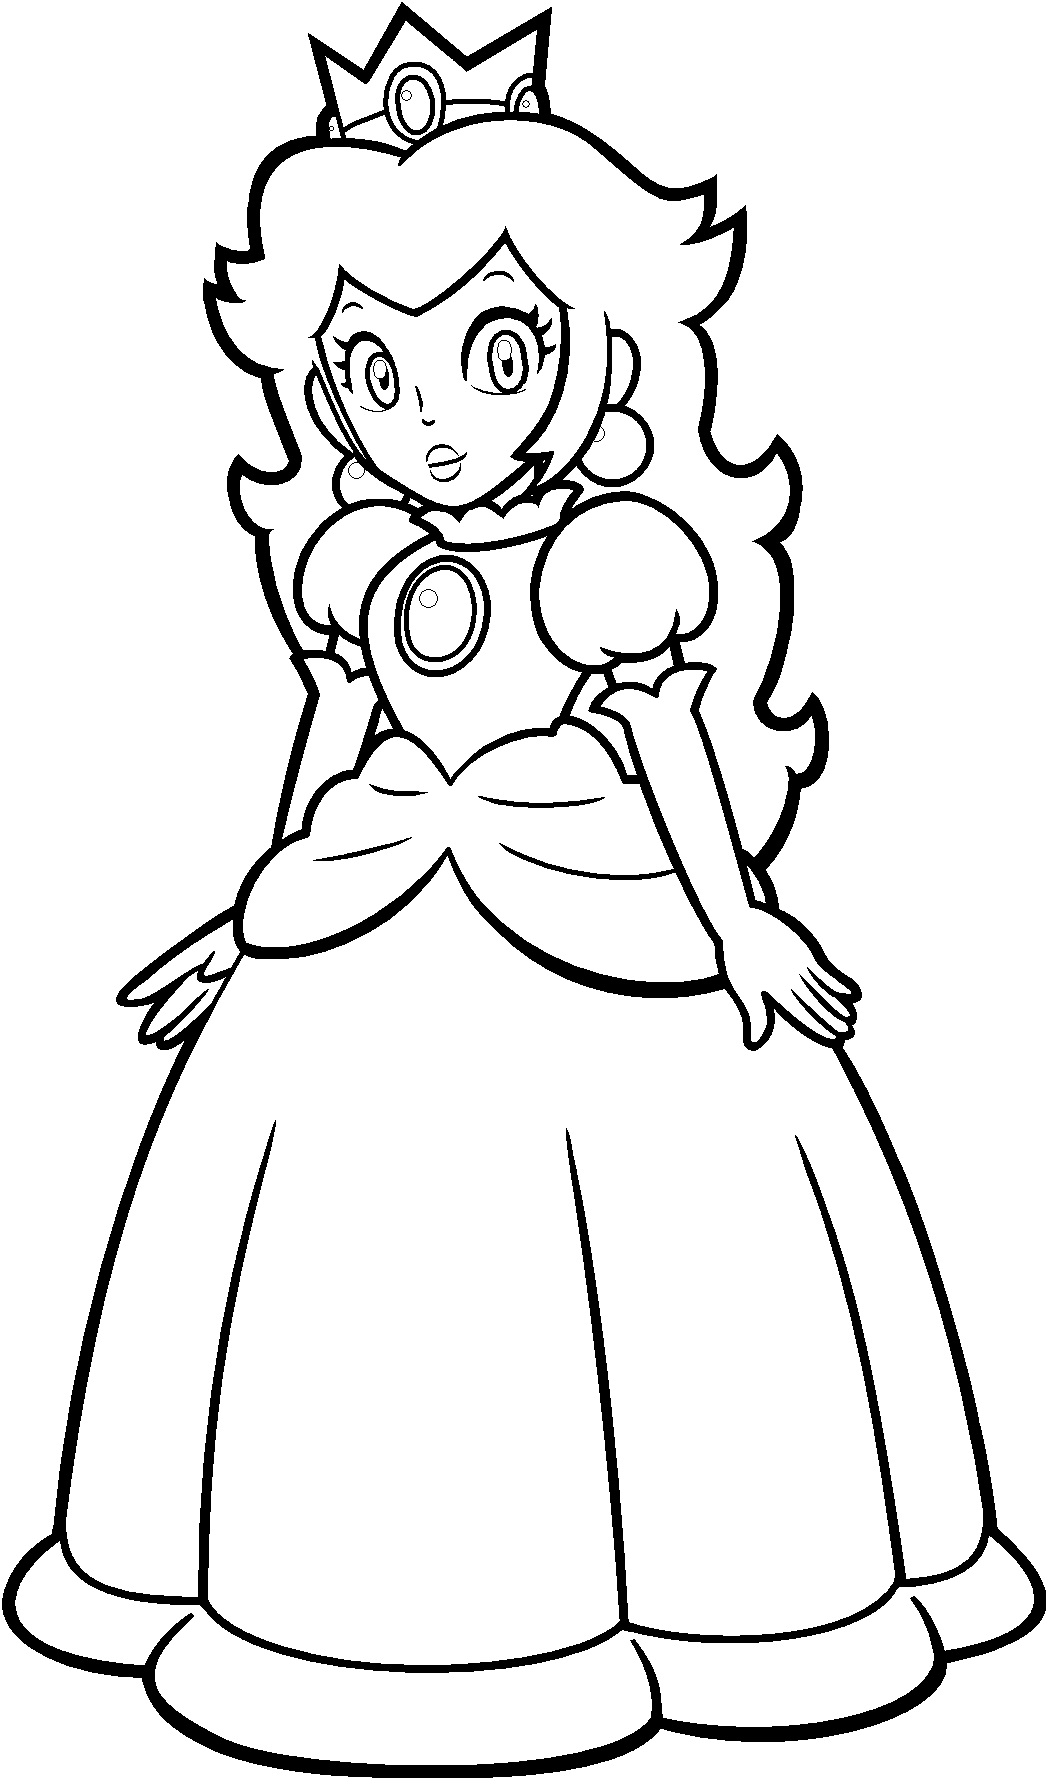 13 Pics Of Peach Mario Kart Coloring Pages - Mario ...